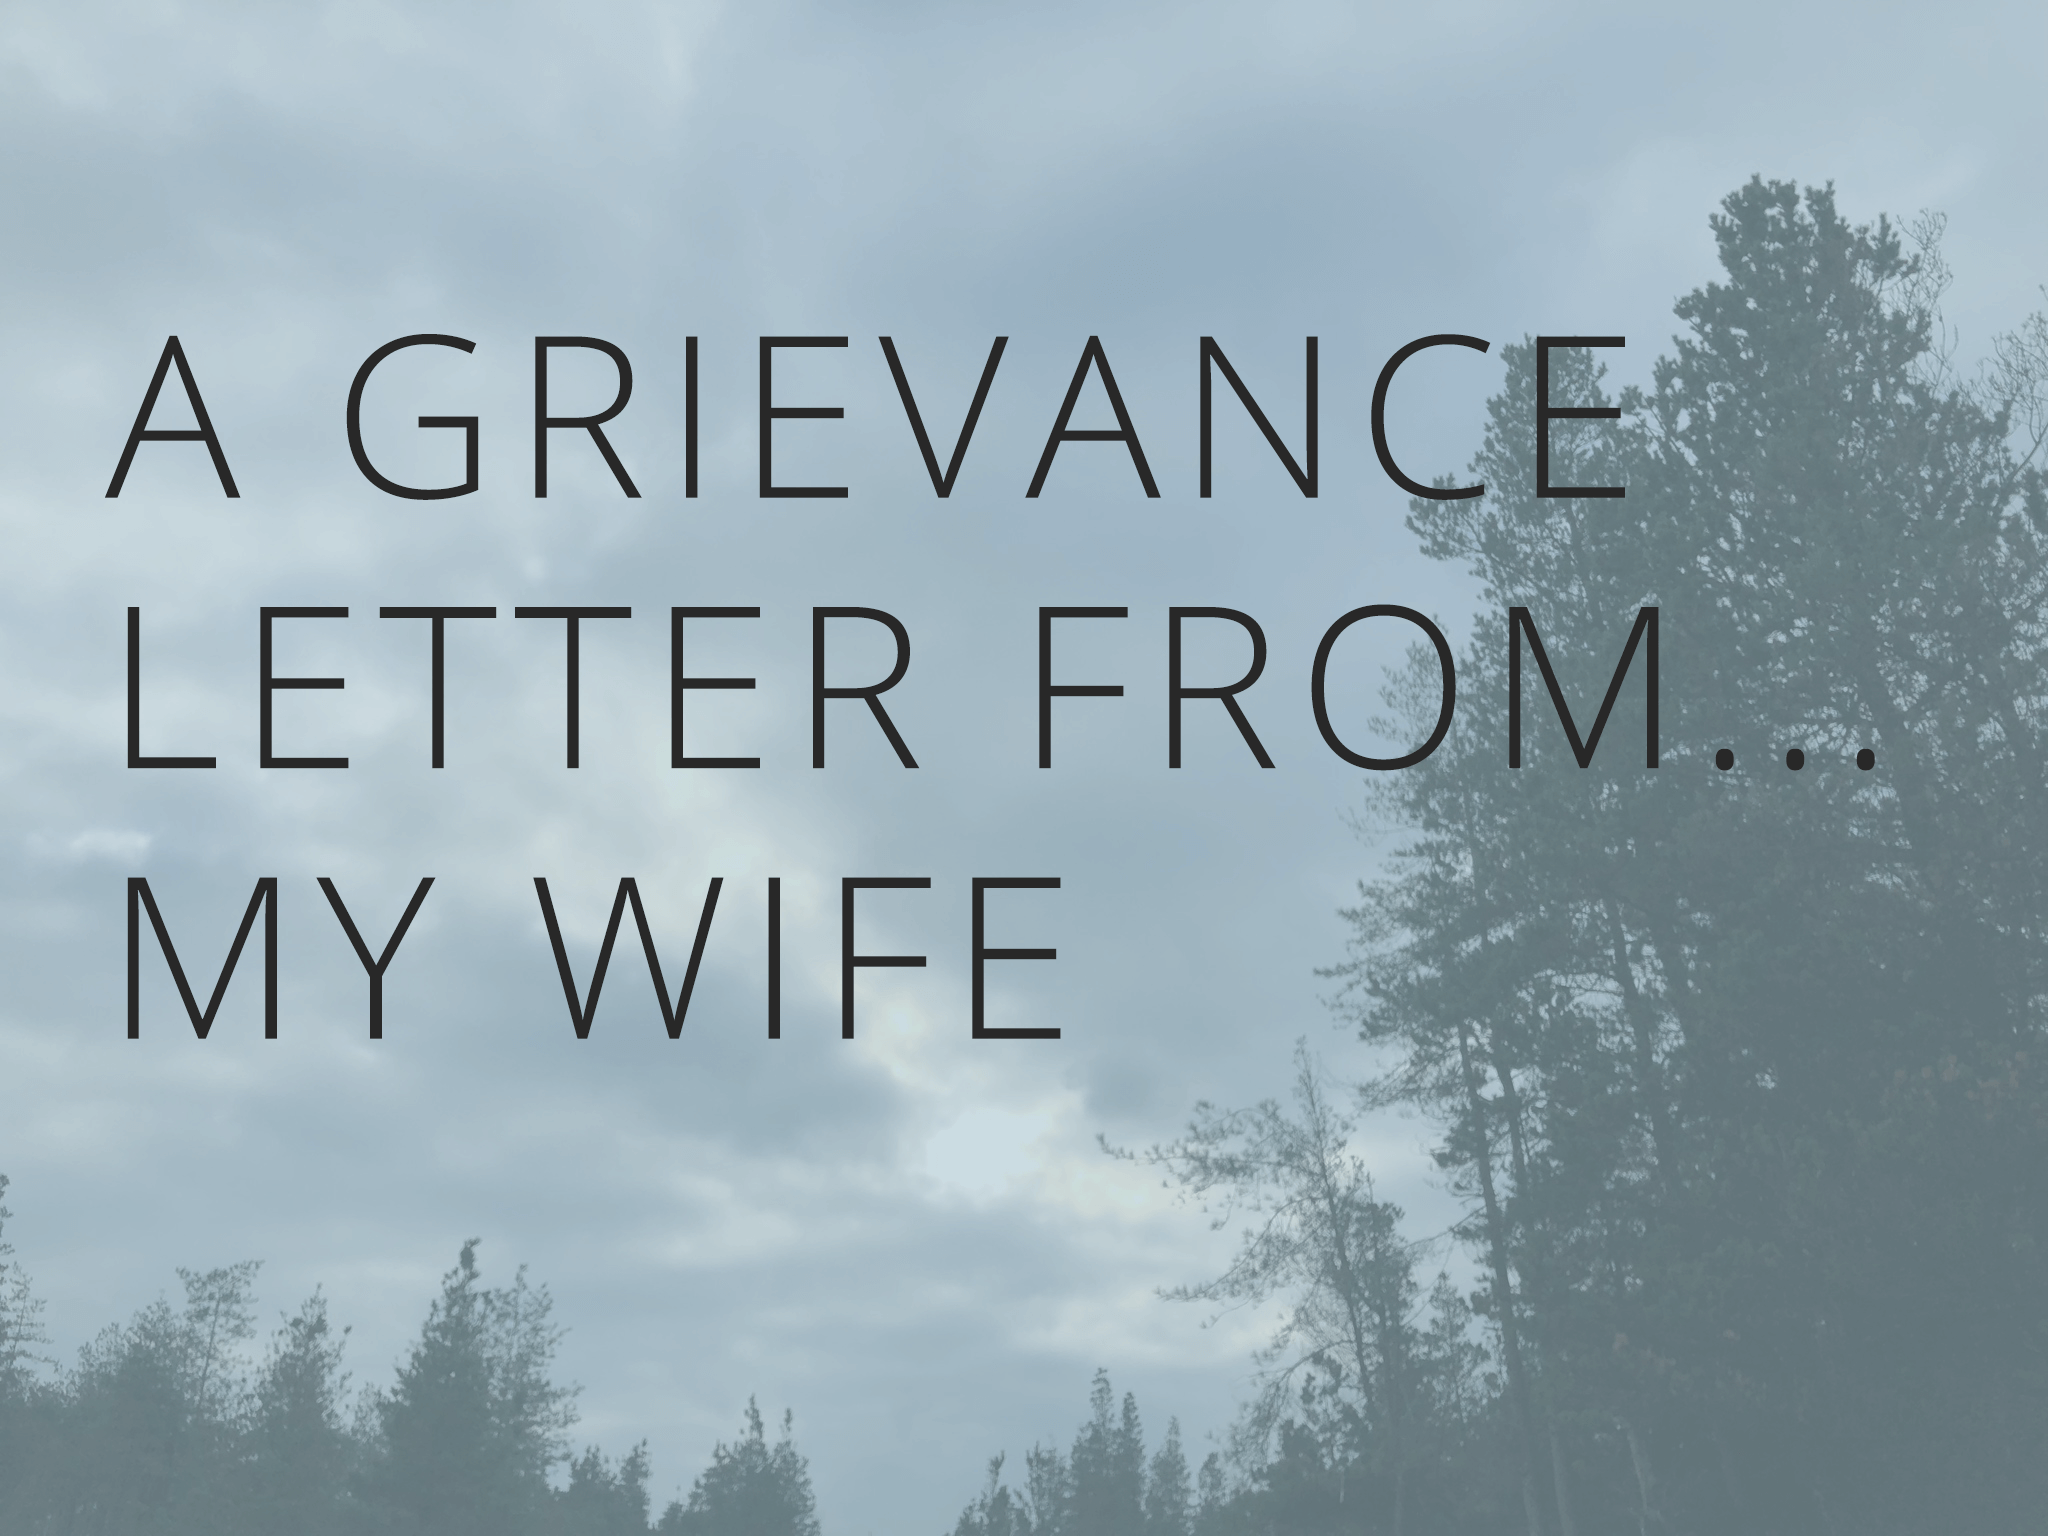 A Grievance Letter From My Wife